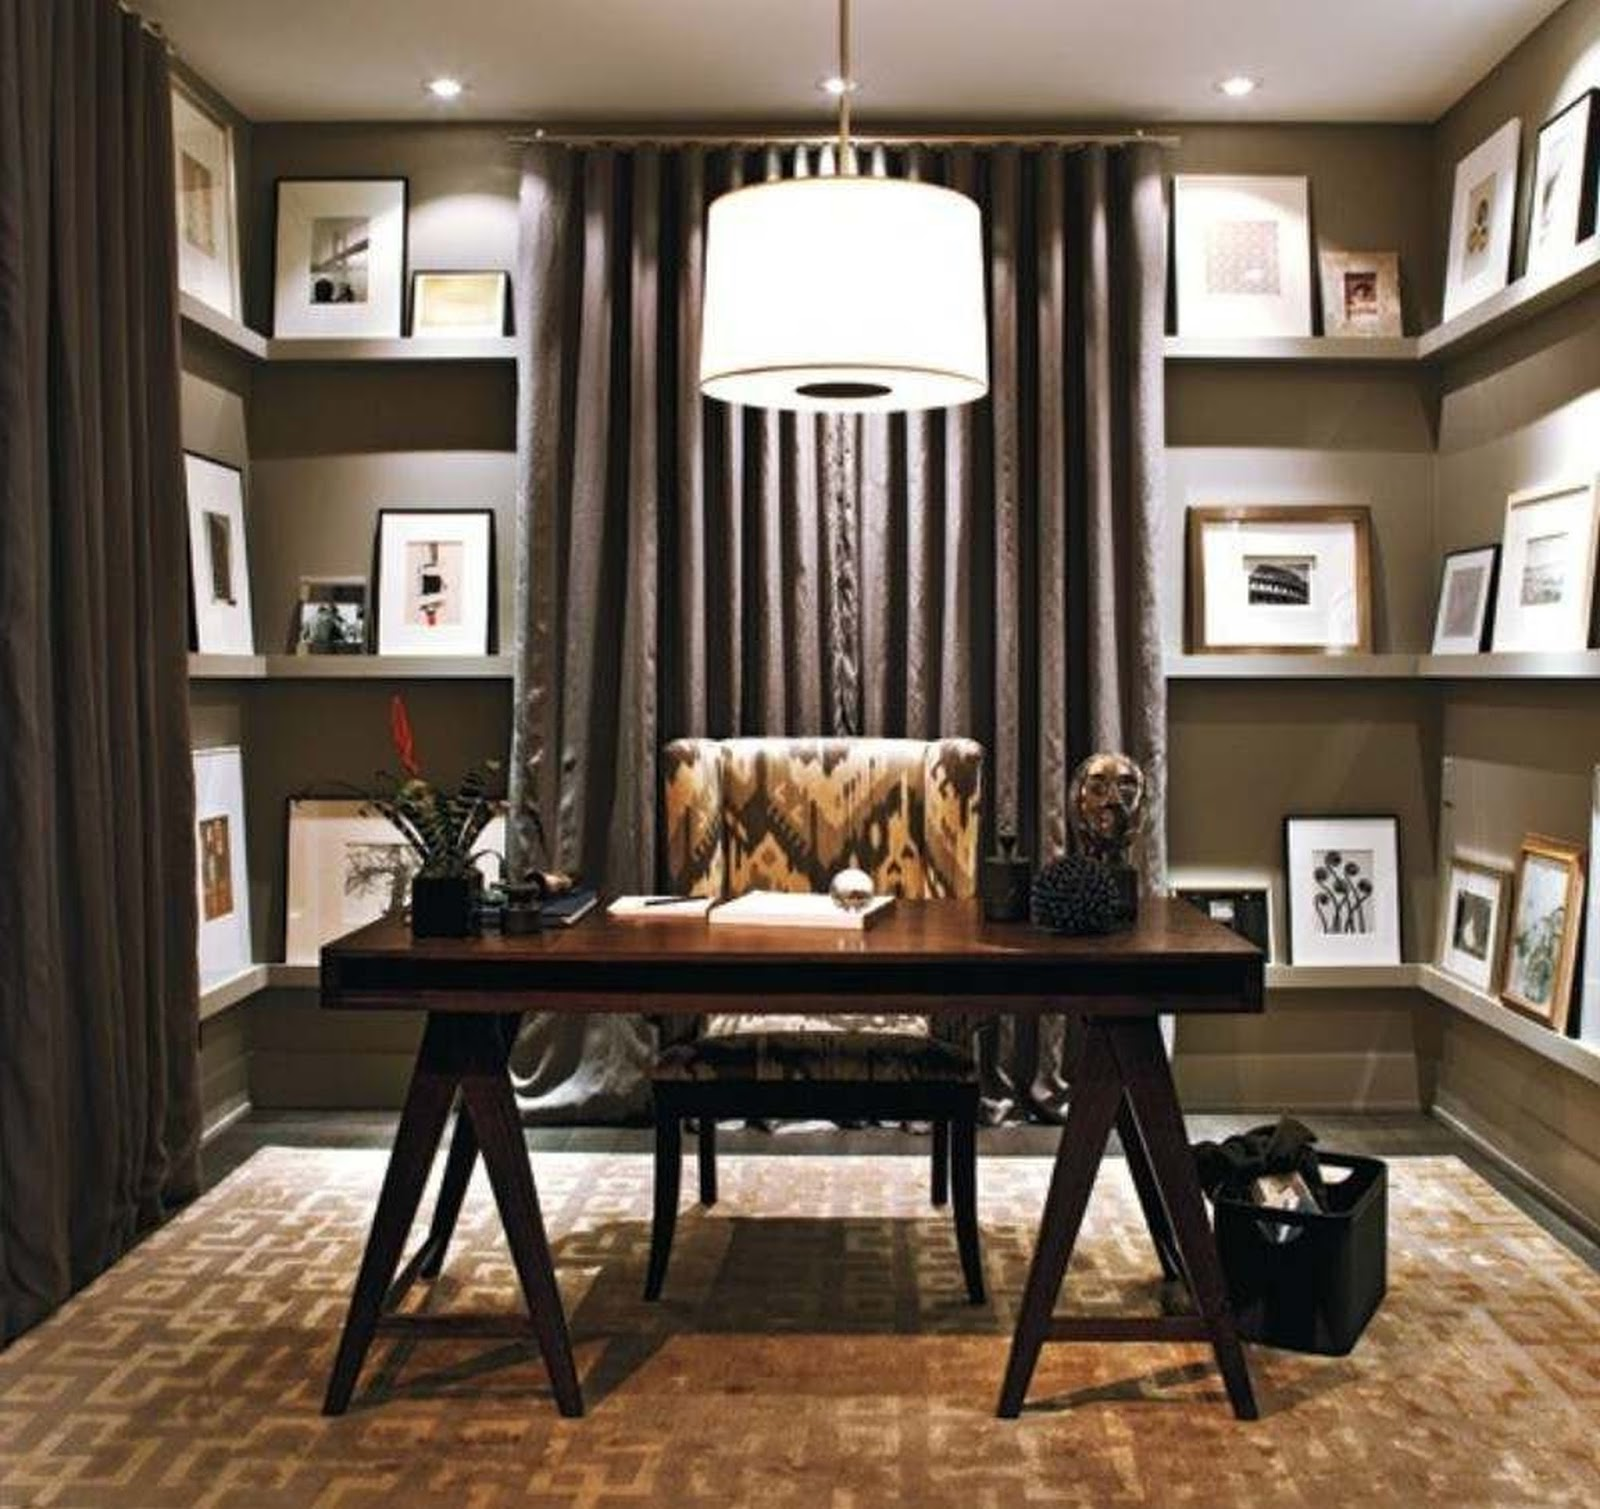 Home Design Ideas For Small Spaces: 5 Tips How To Decorating An Artistic Home Office